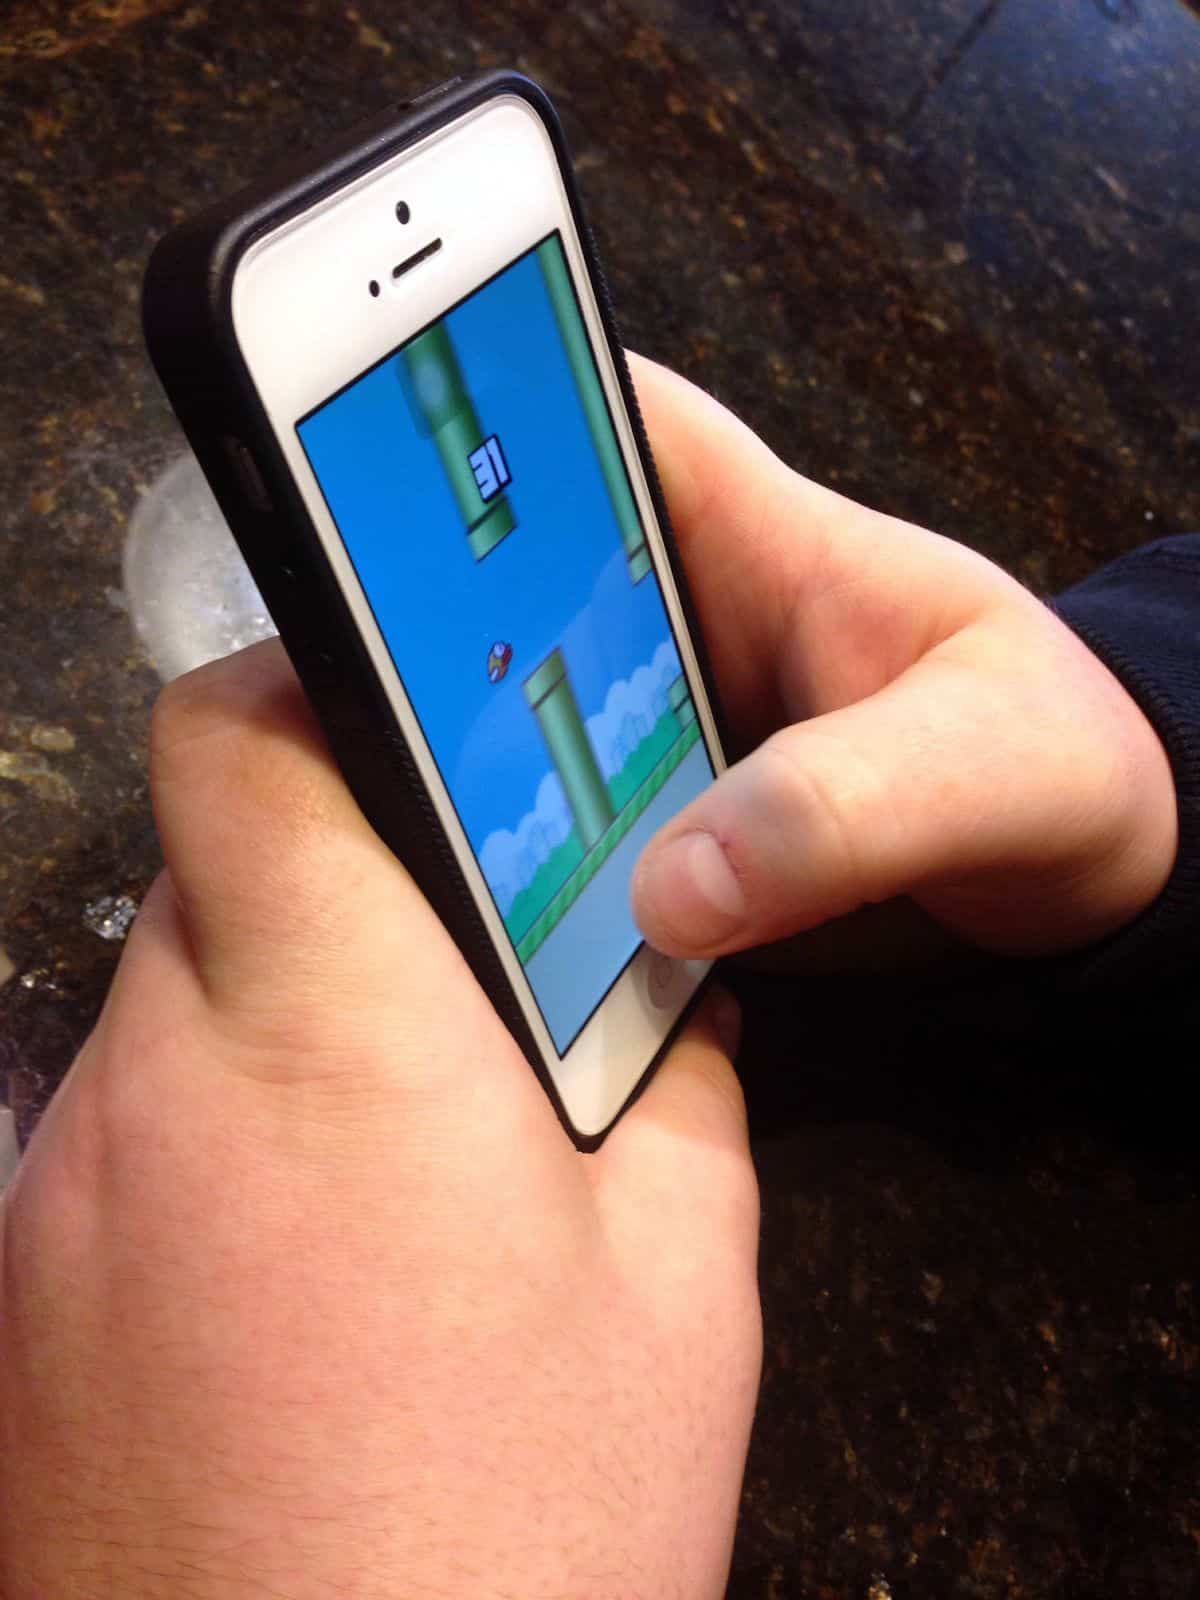 A close-up of a person playing Flappy Bird, a game as challenging as it is addictive, on an iPhone.